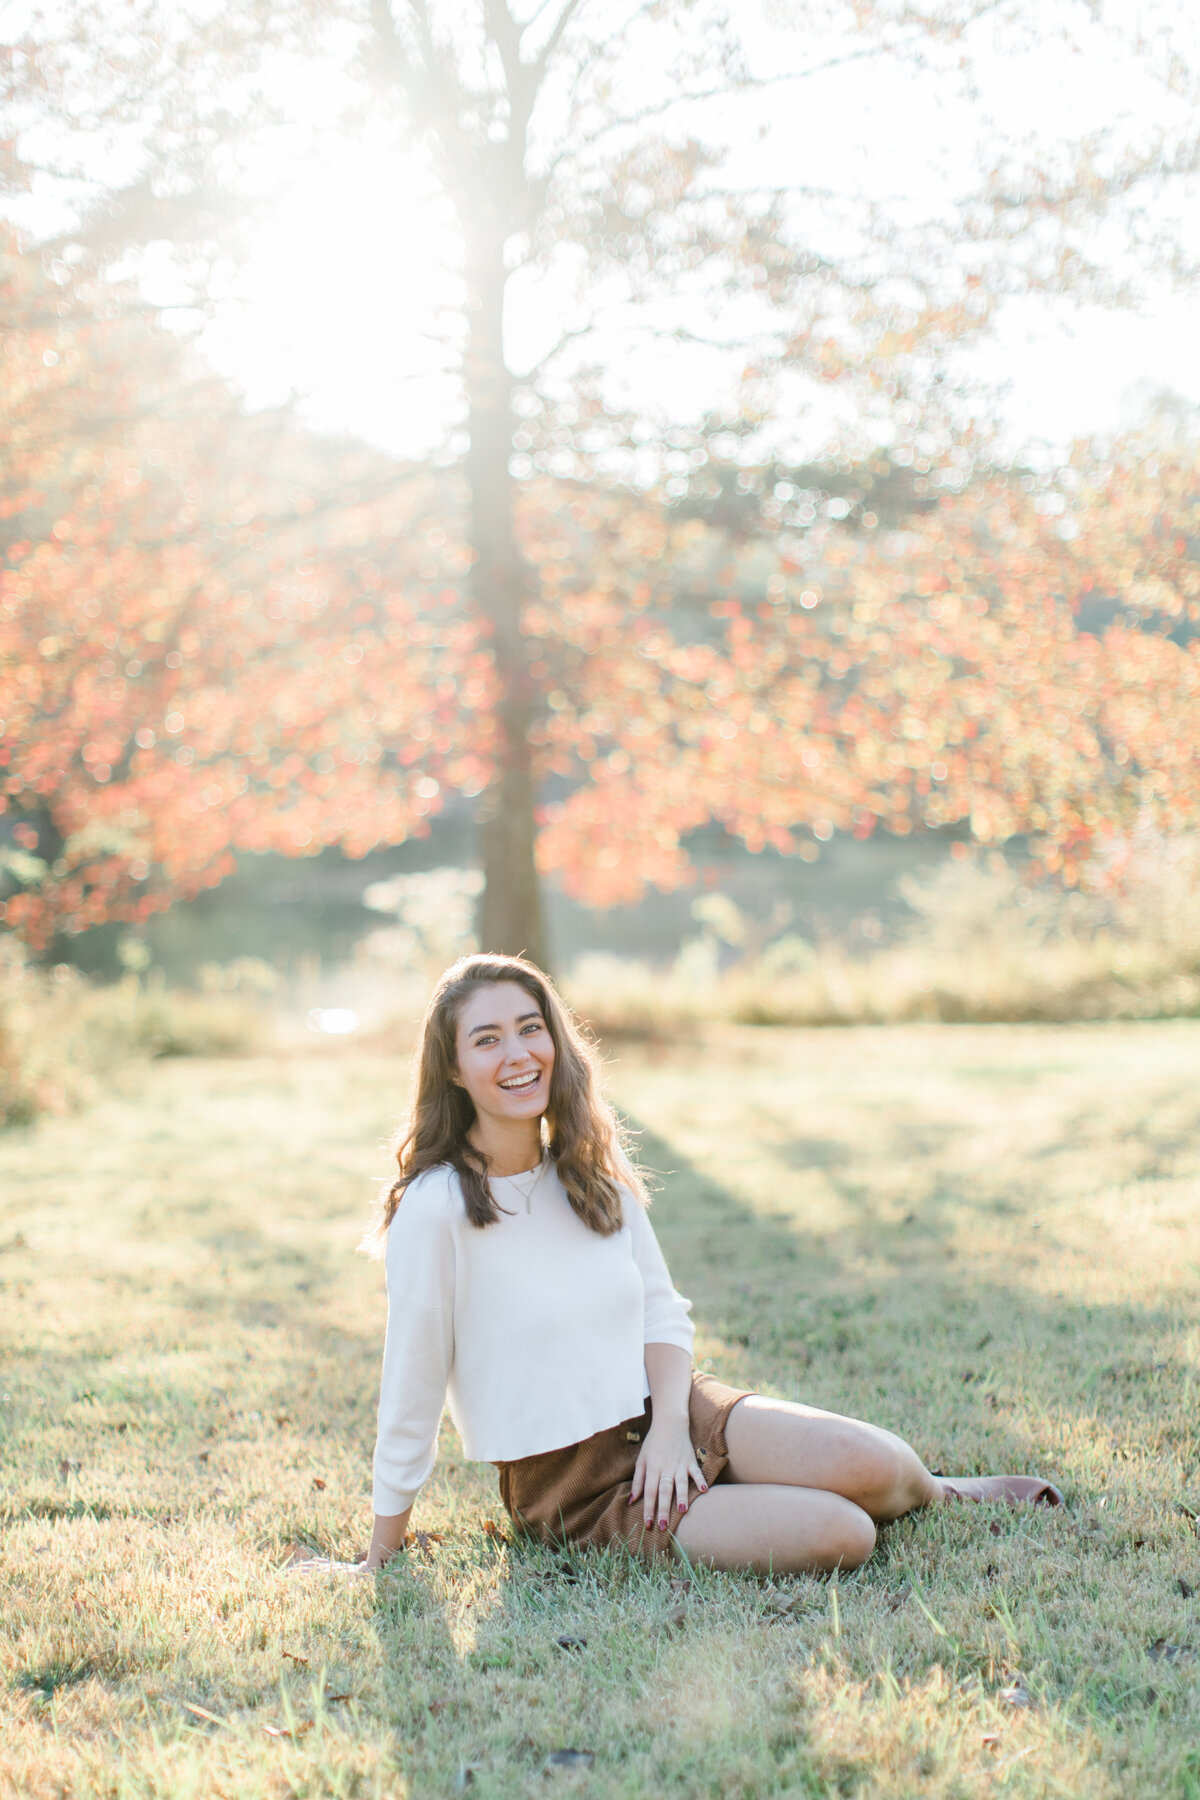 Fall_Meadowlark_Gardens_Virginia_DC_Senior_Portrait_Session_Photographer_Angelika_Johns_Photography-8513